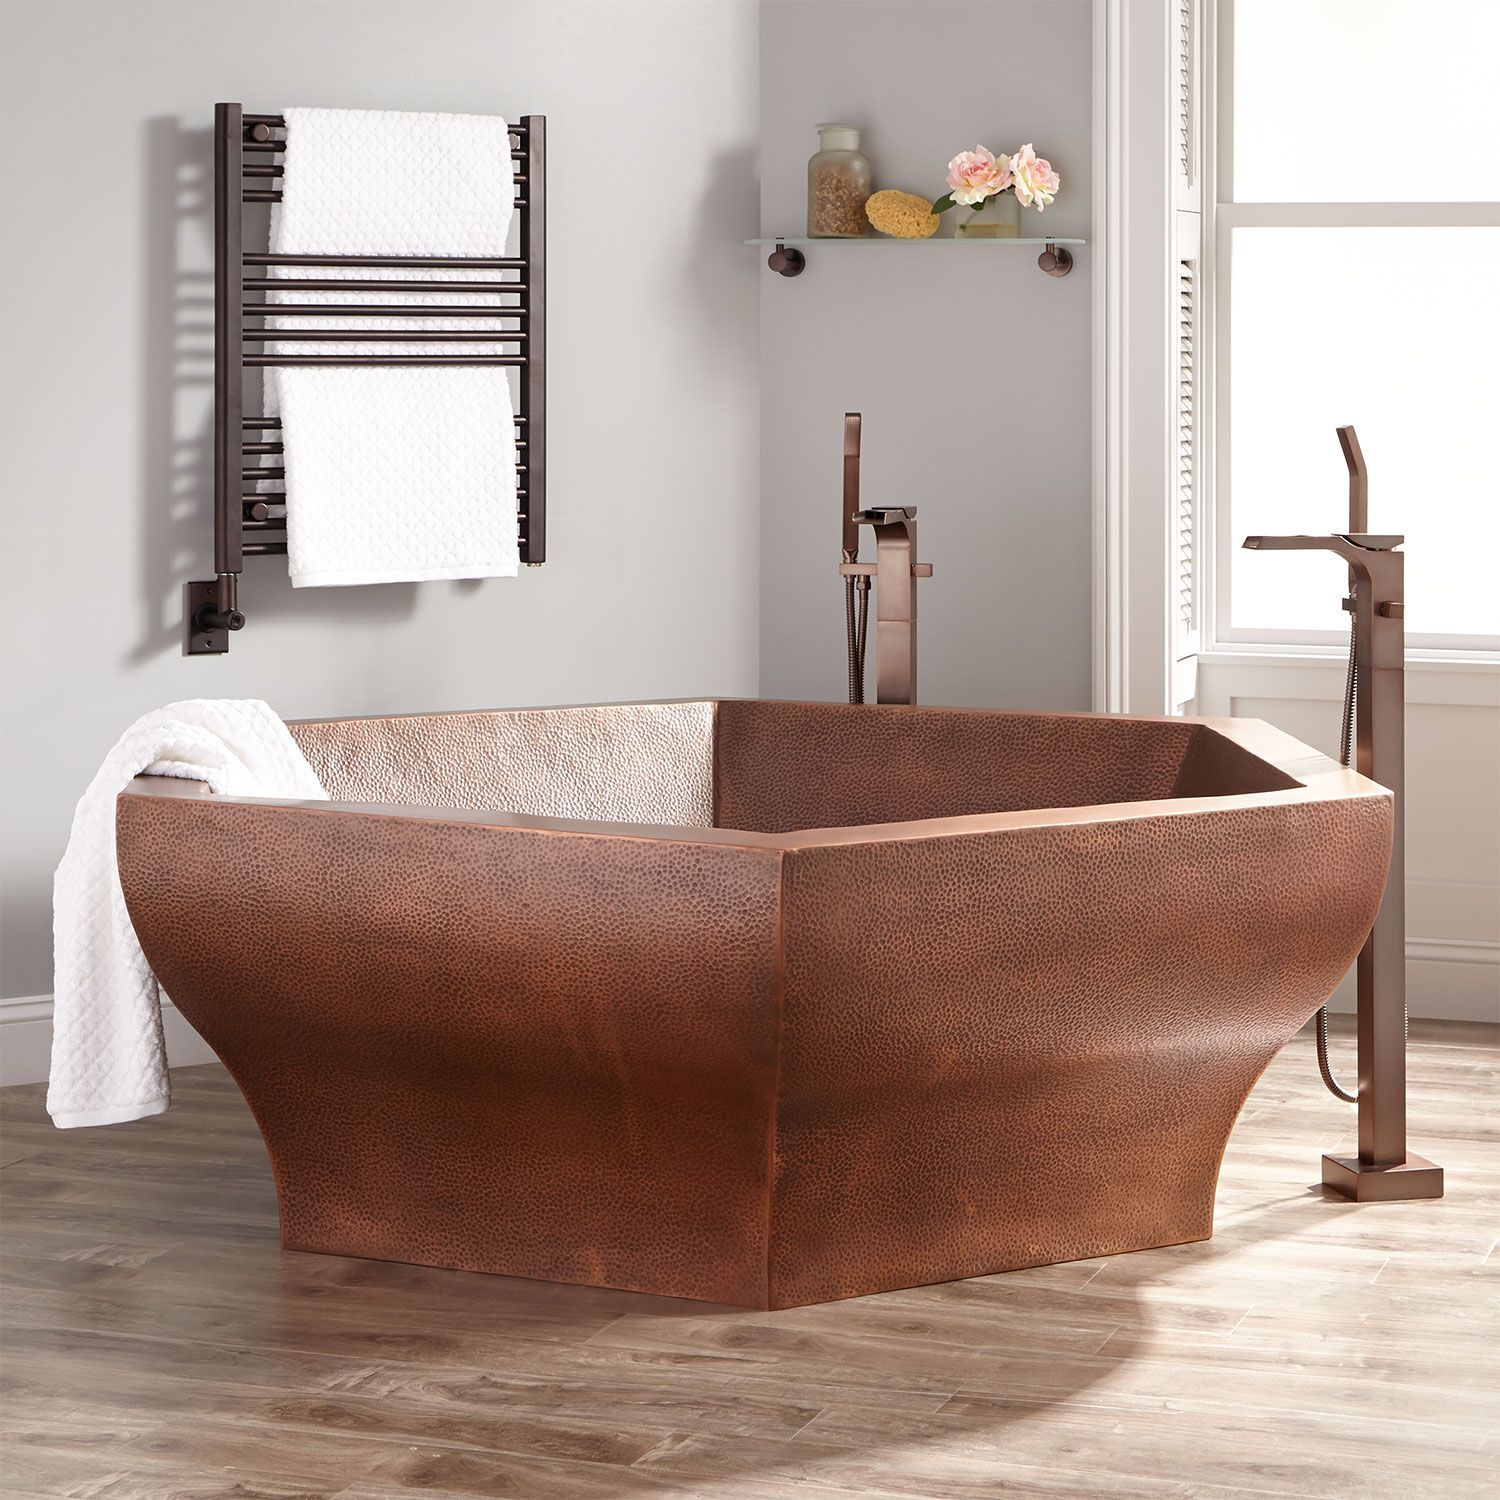 73 Riley Hexagon Hammered Copper Two Person Soaking Tub